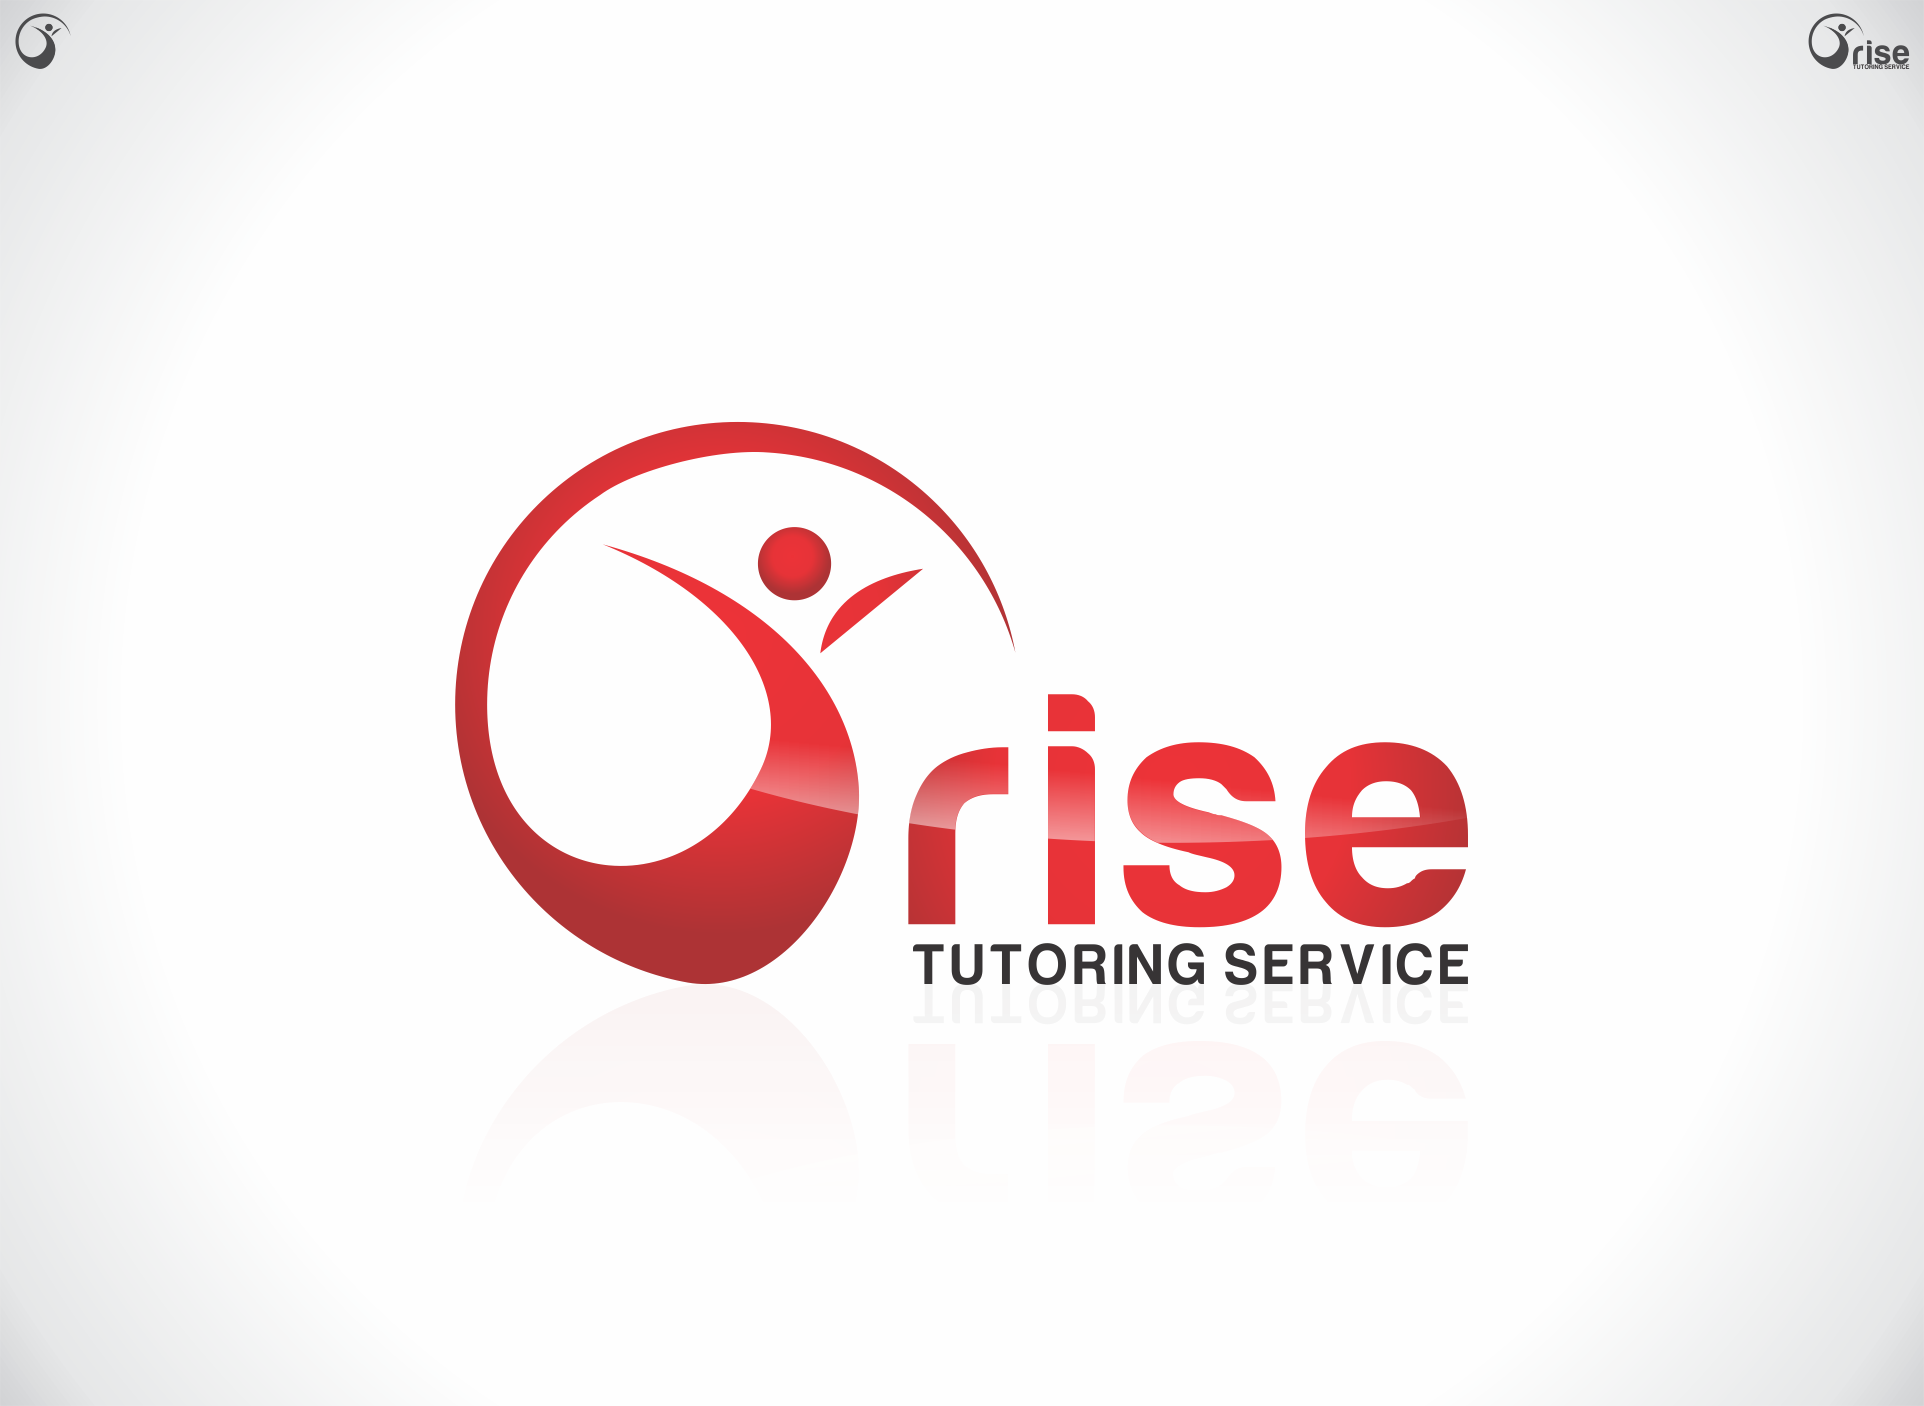 Logo Design by dandor - Entry No. 49 in the Logo Design Contest Imaginative Logo Design for Rise Tutoring Service.